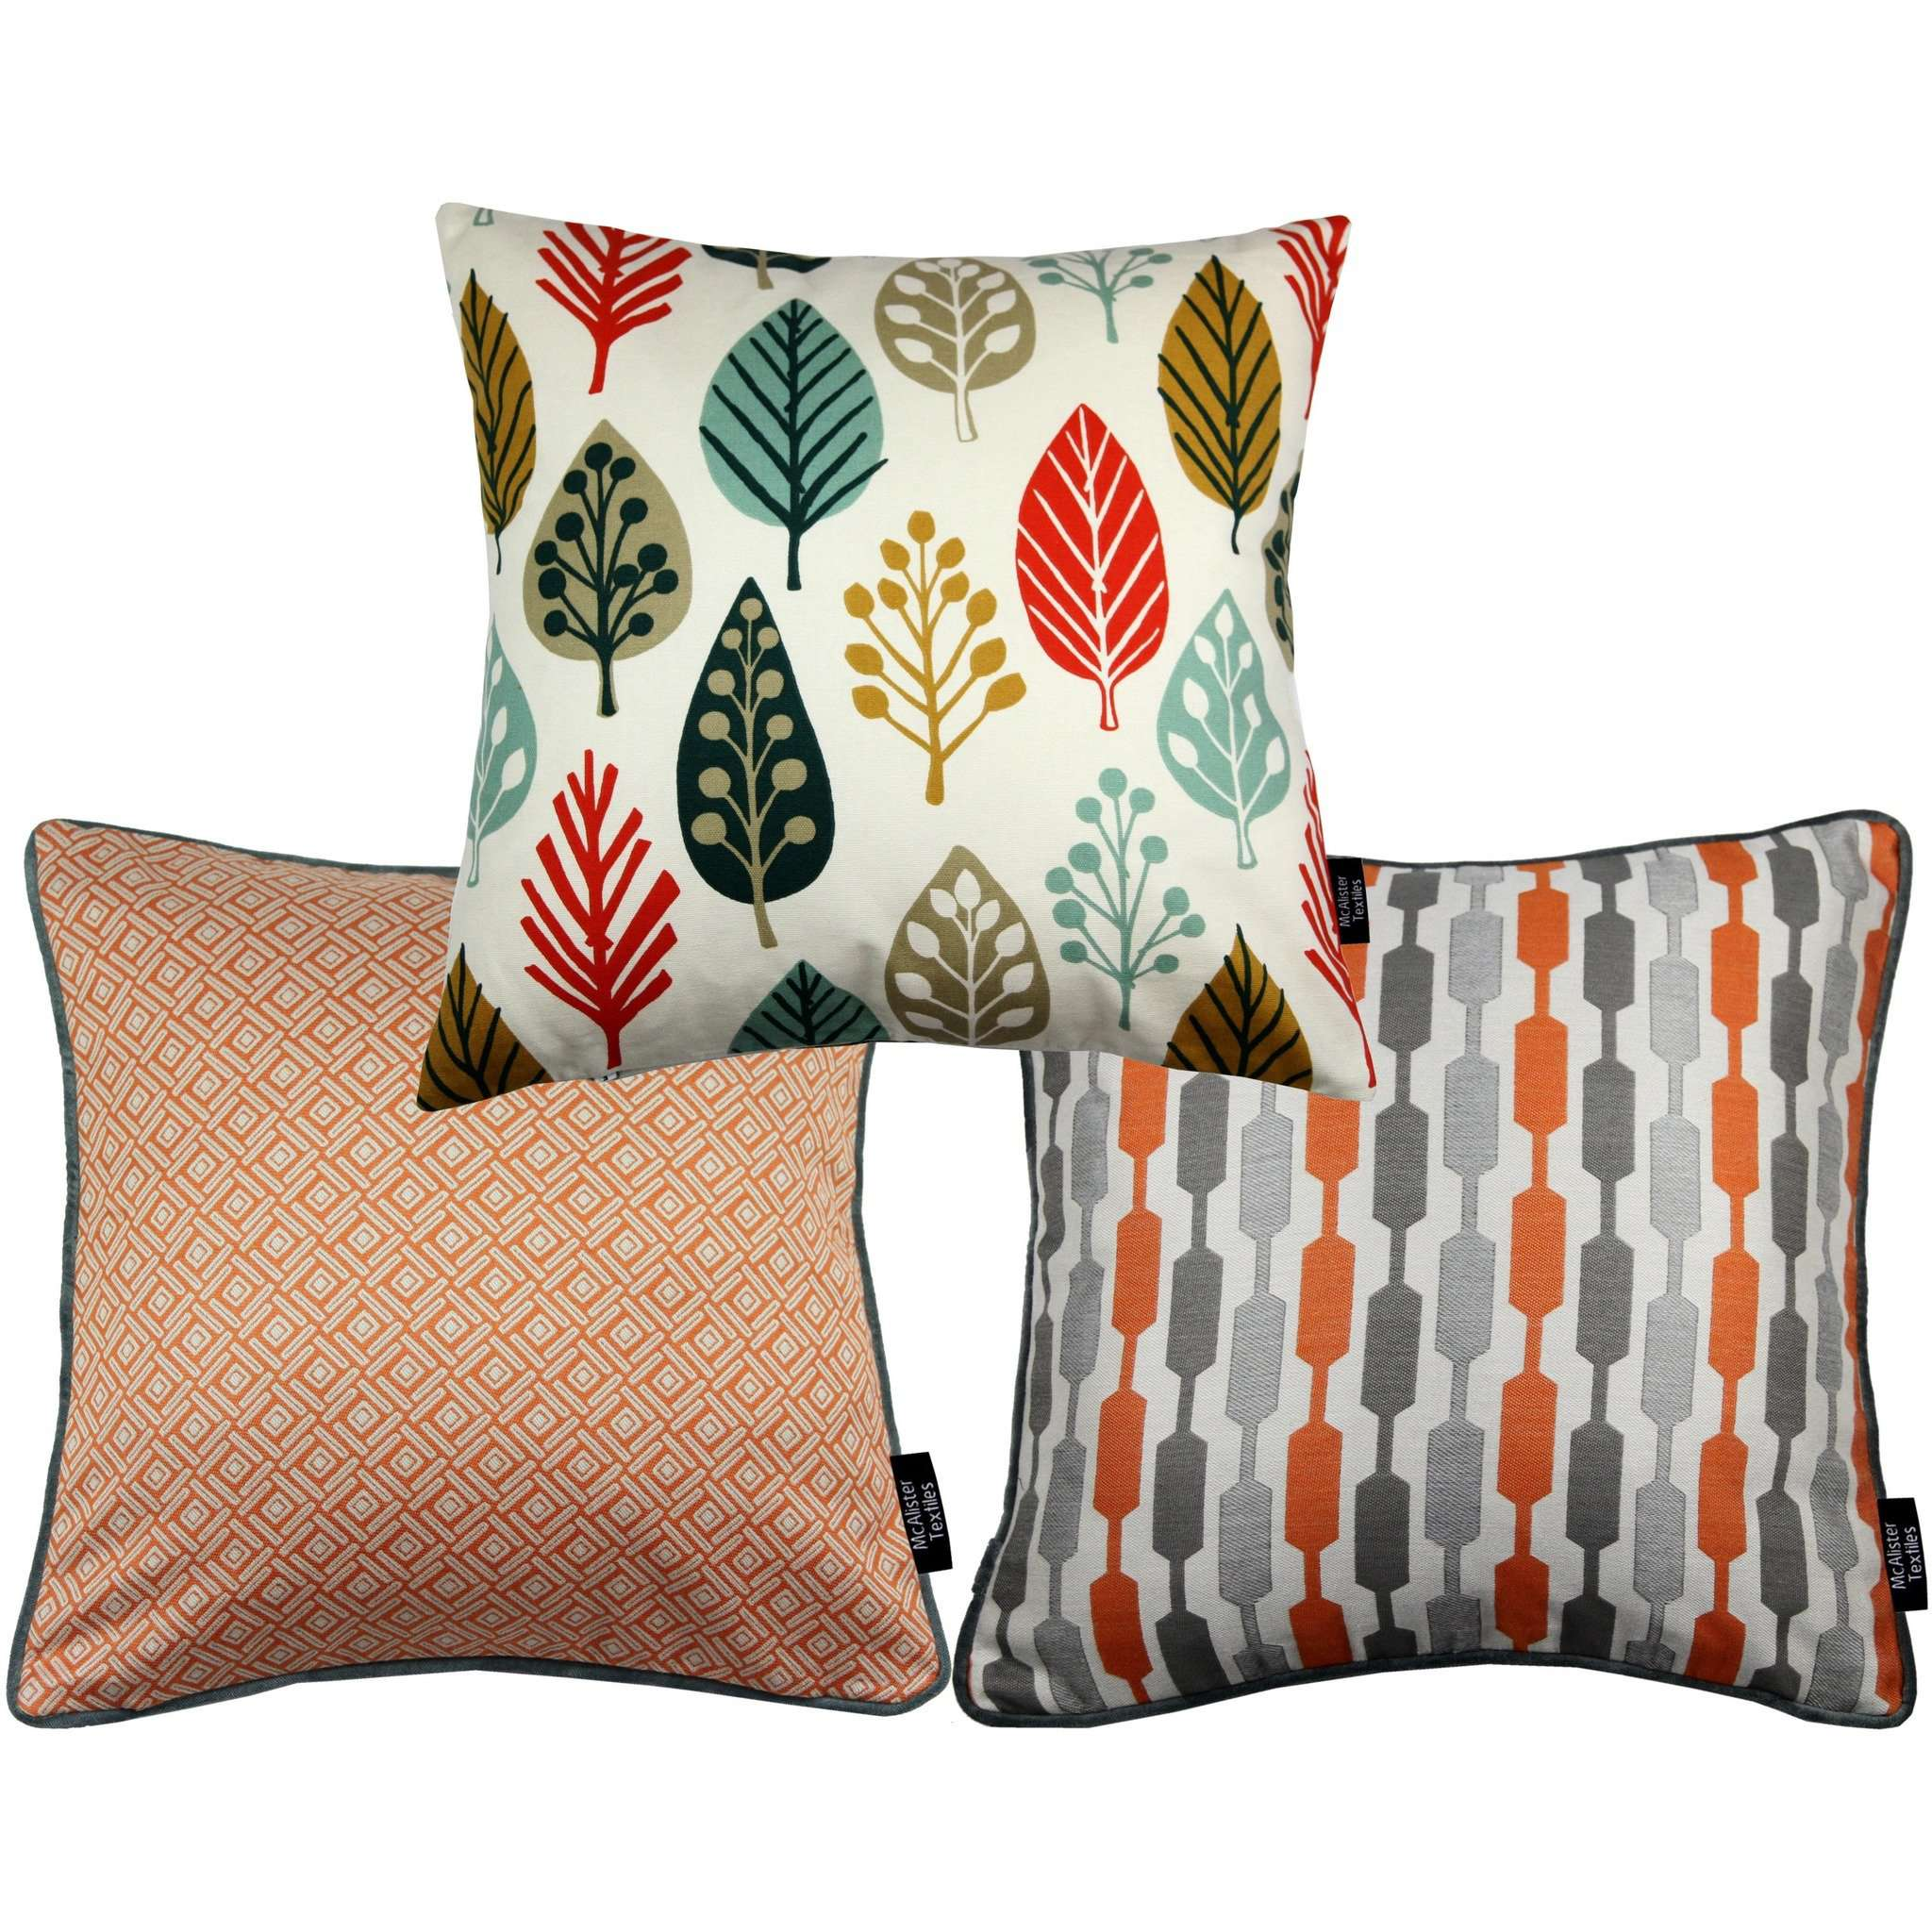 McAlister Textiles Copenhagen Burnt Orange 43cm x 43cm Cushion Set of 3 Cushions and Covers Cushion Cover